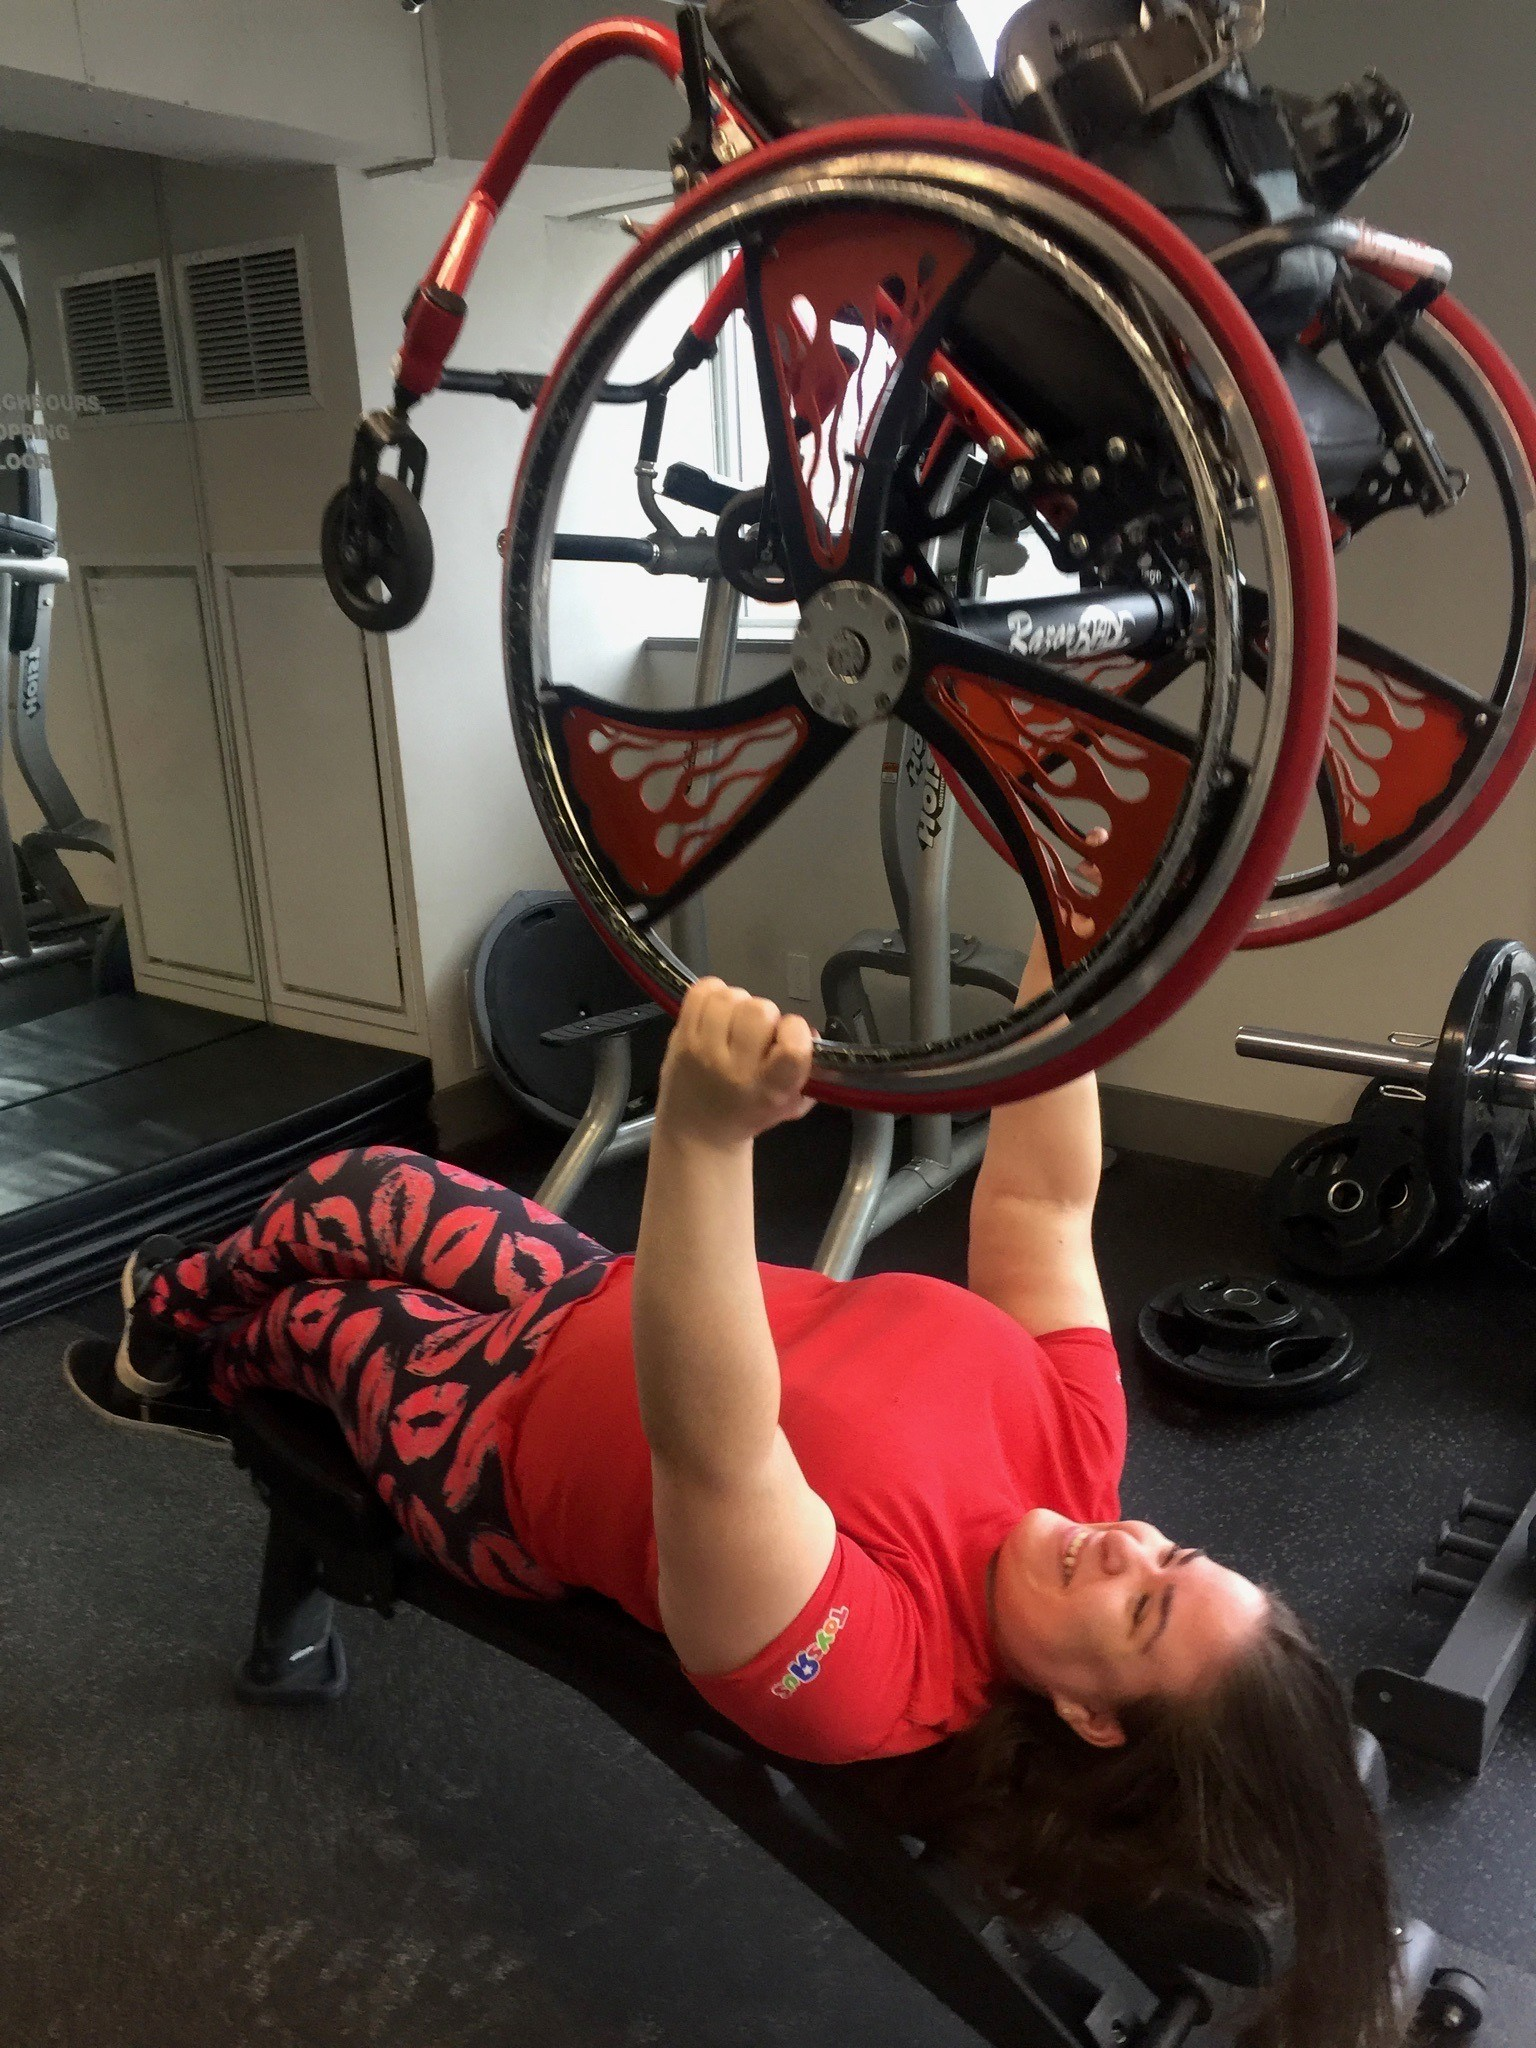 Jenna uses her wheelchair as a weight during a workout